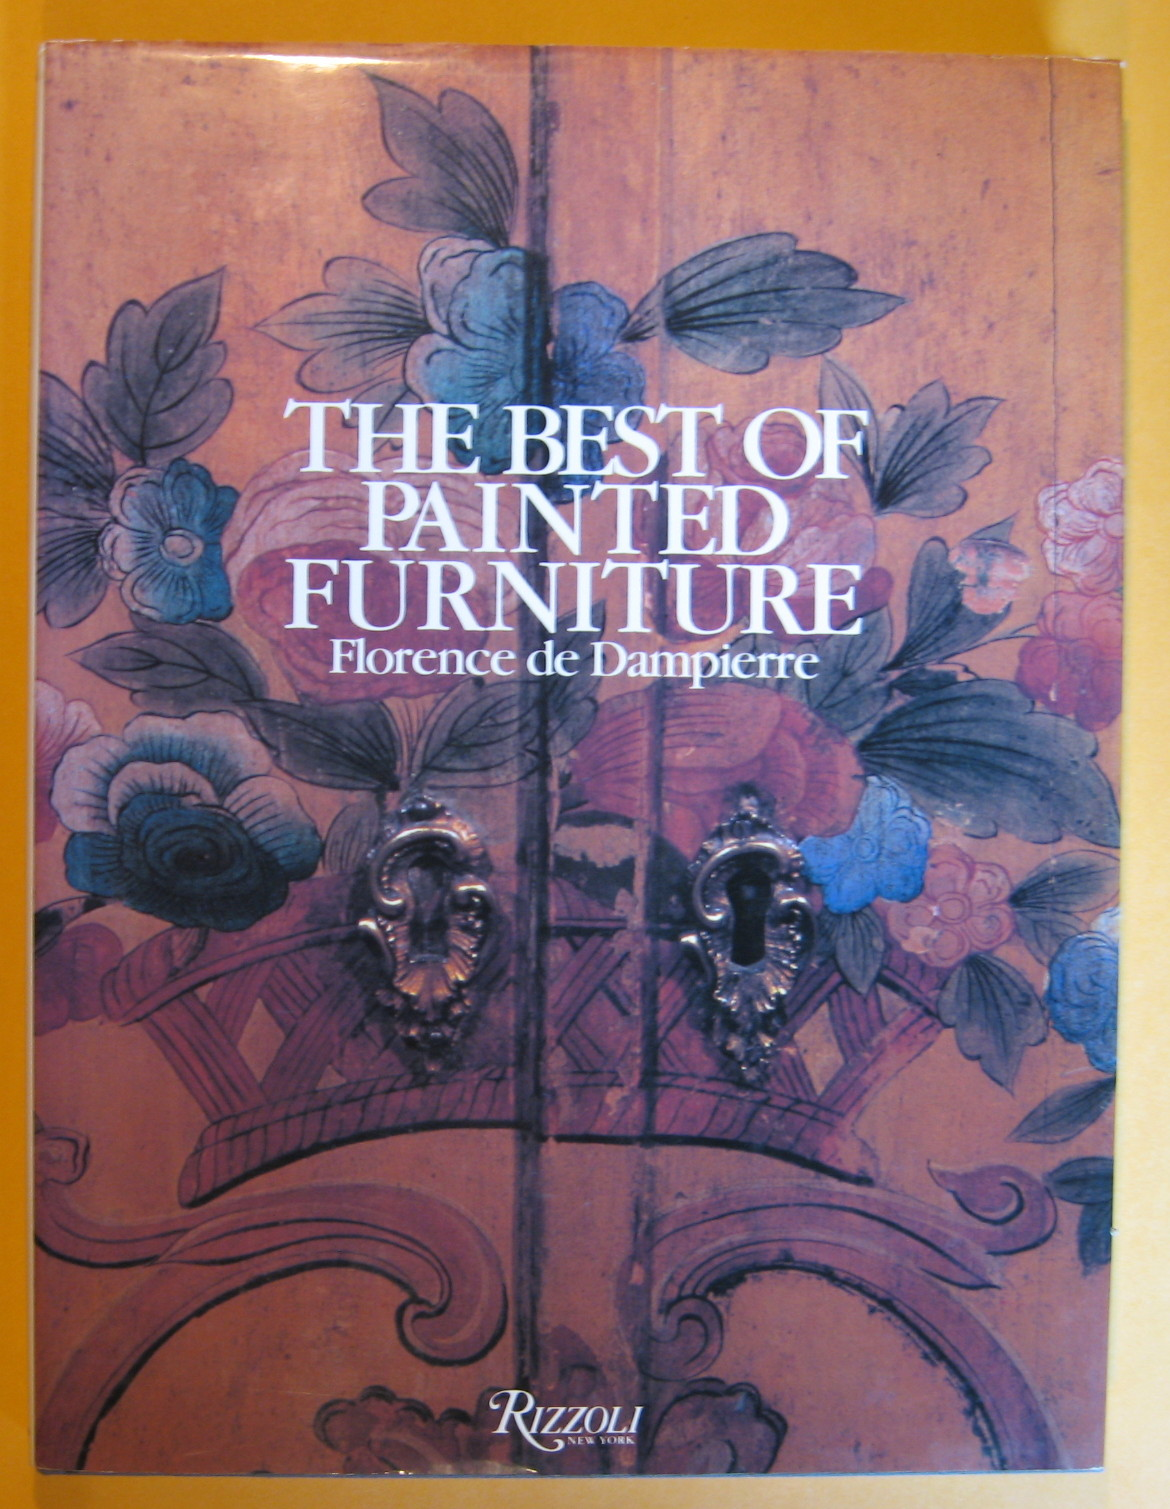 The Best of Painted Furniture, de Dampierre, Florence